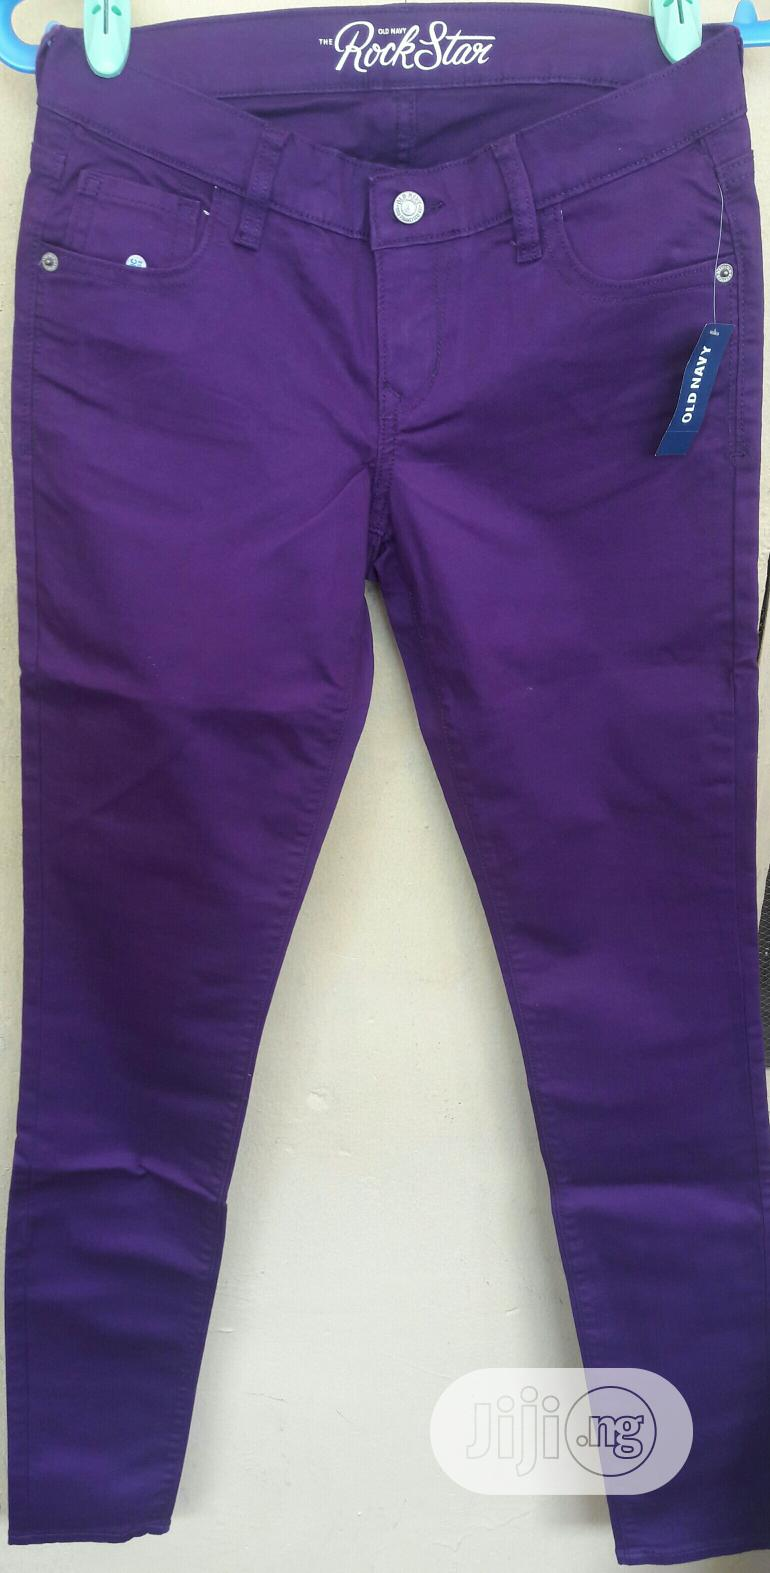 Old Navy Skinny Jeans   Clothing for sale in Kosofe, Lagos State, Nigeria